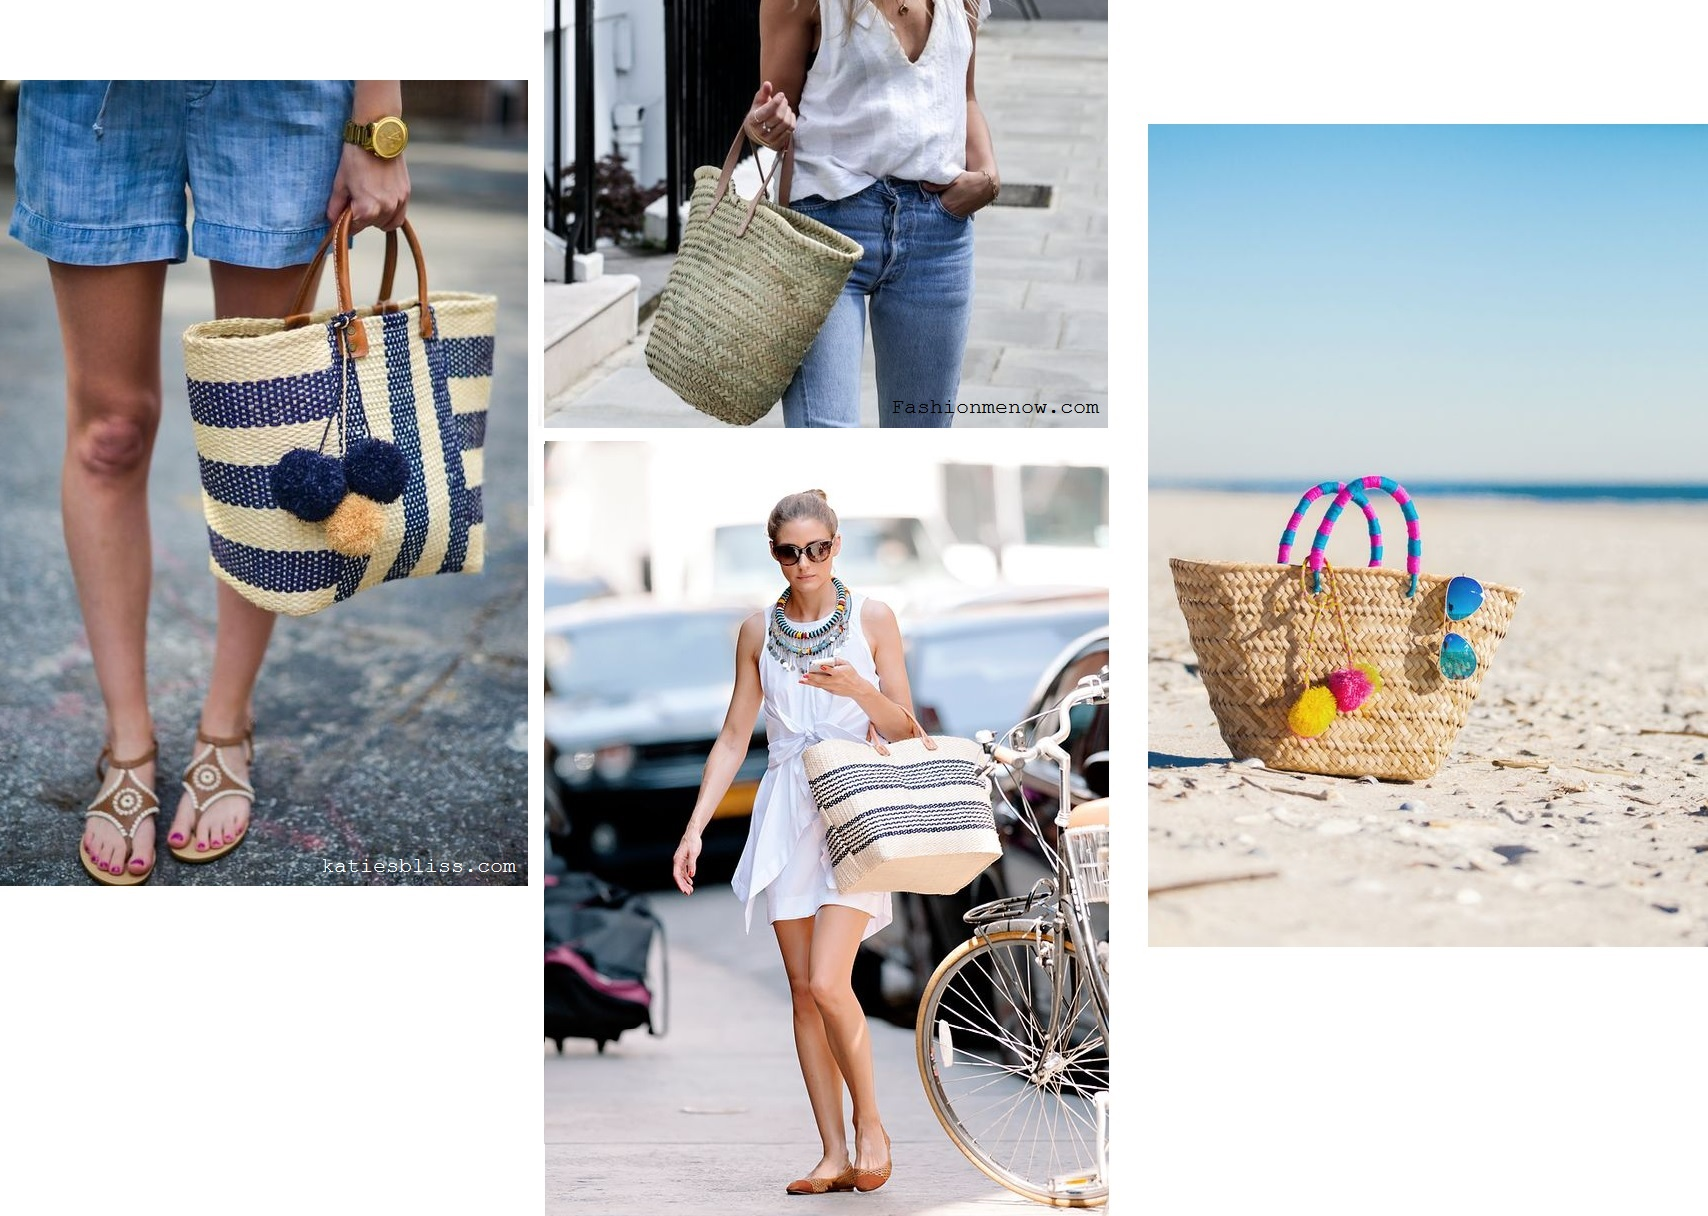 5. Straw bag summer fashion 2016 credit